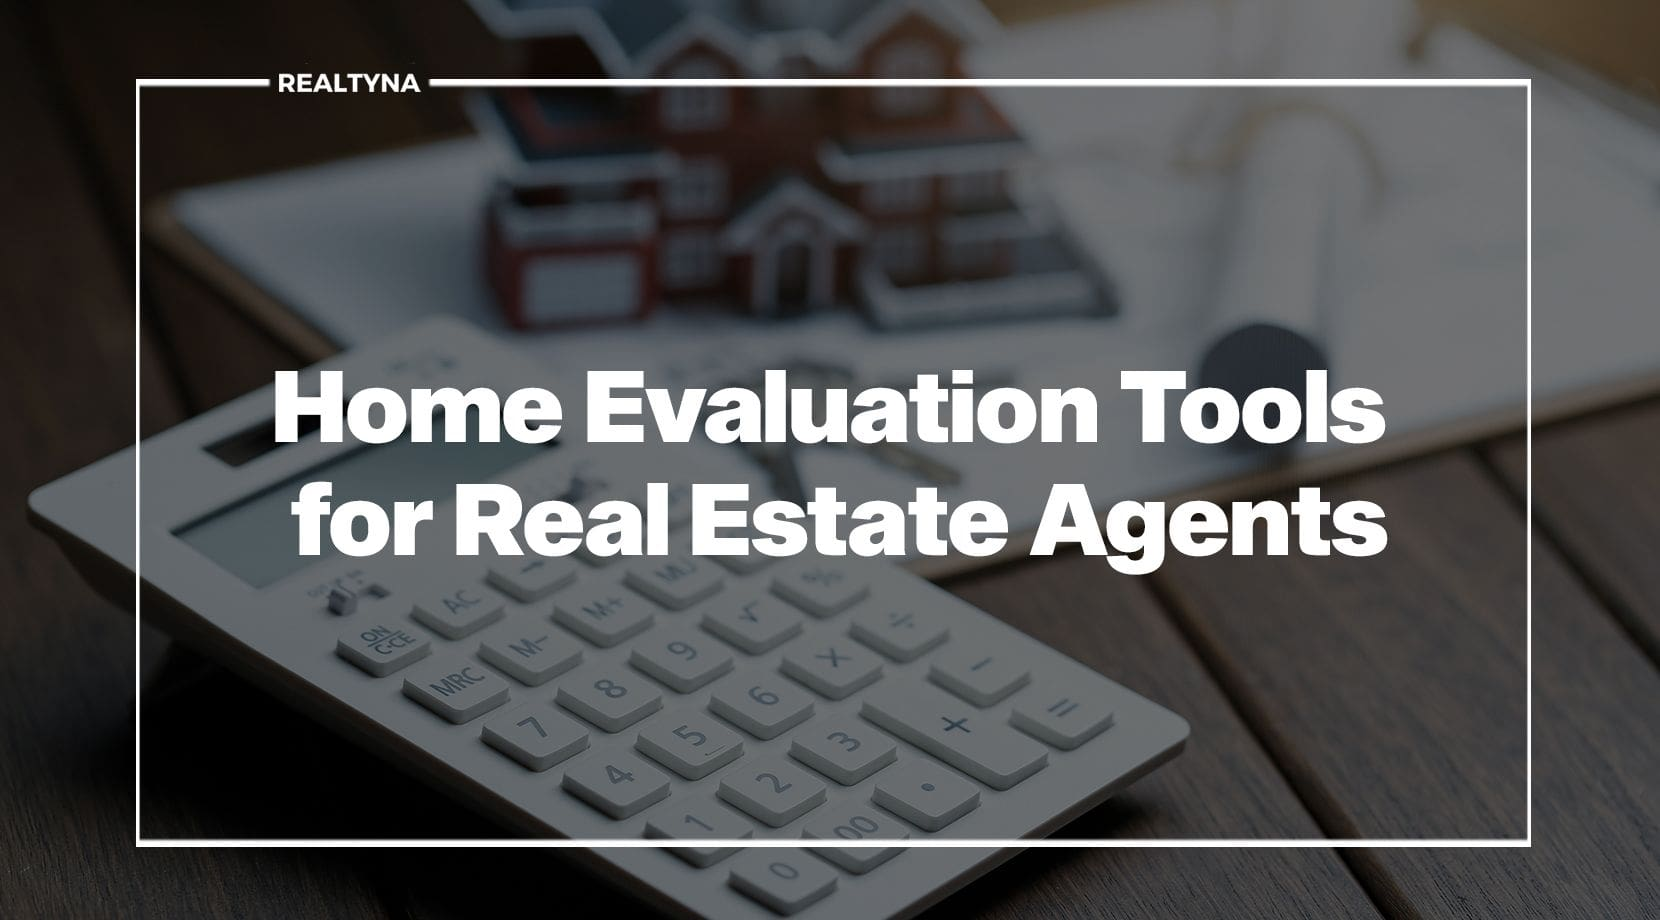 Home Evaluation Tools for Real Estate Agents